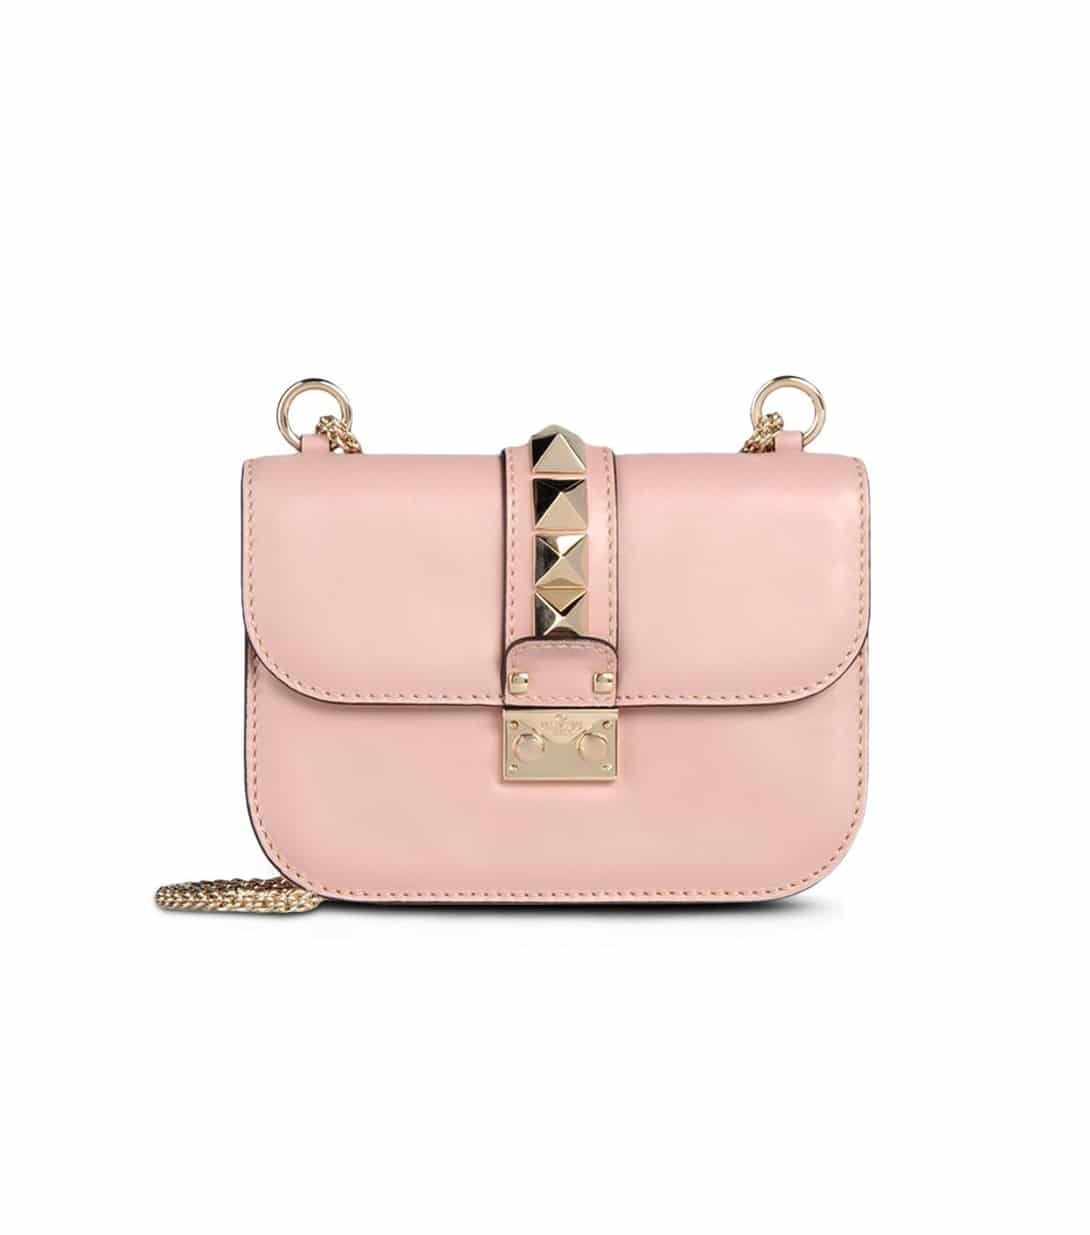 Valentino Holiday 2013 Bag Collection – Spotted Fashion